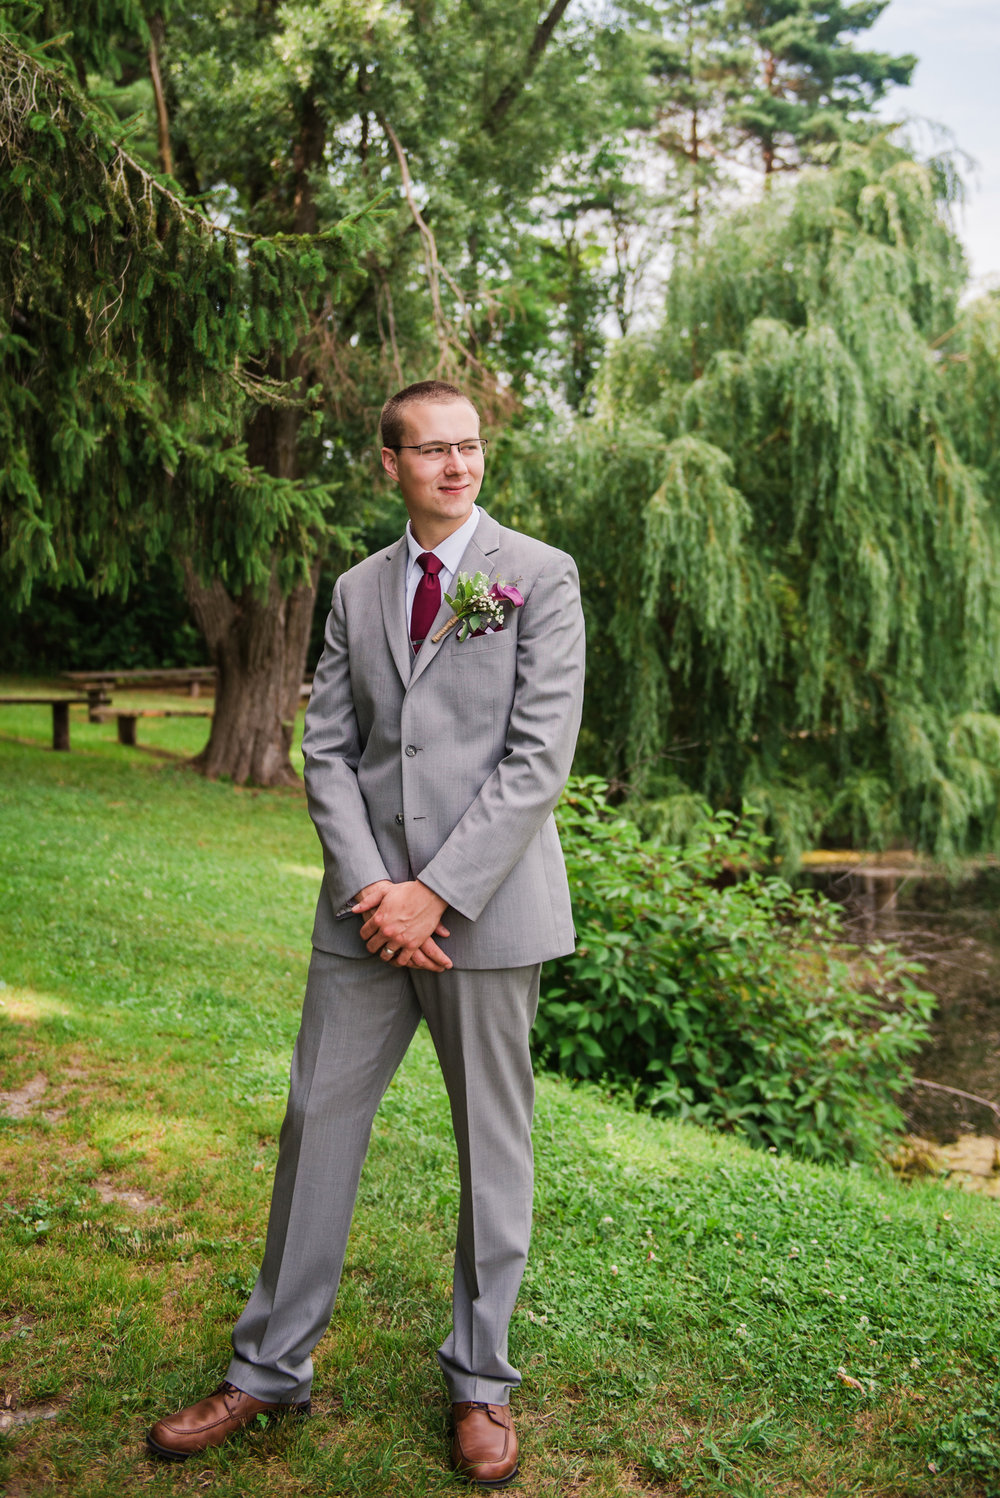 JILLSTUDIO_MKJ_Farms_Central_NY_Wedding_Rochester_NY_Photographer_DSC_8471.jpg